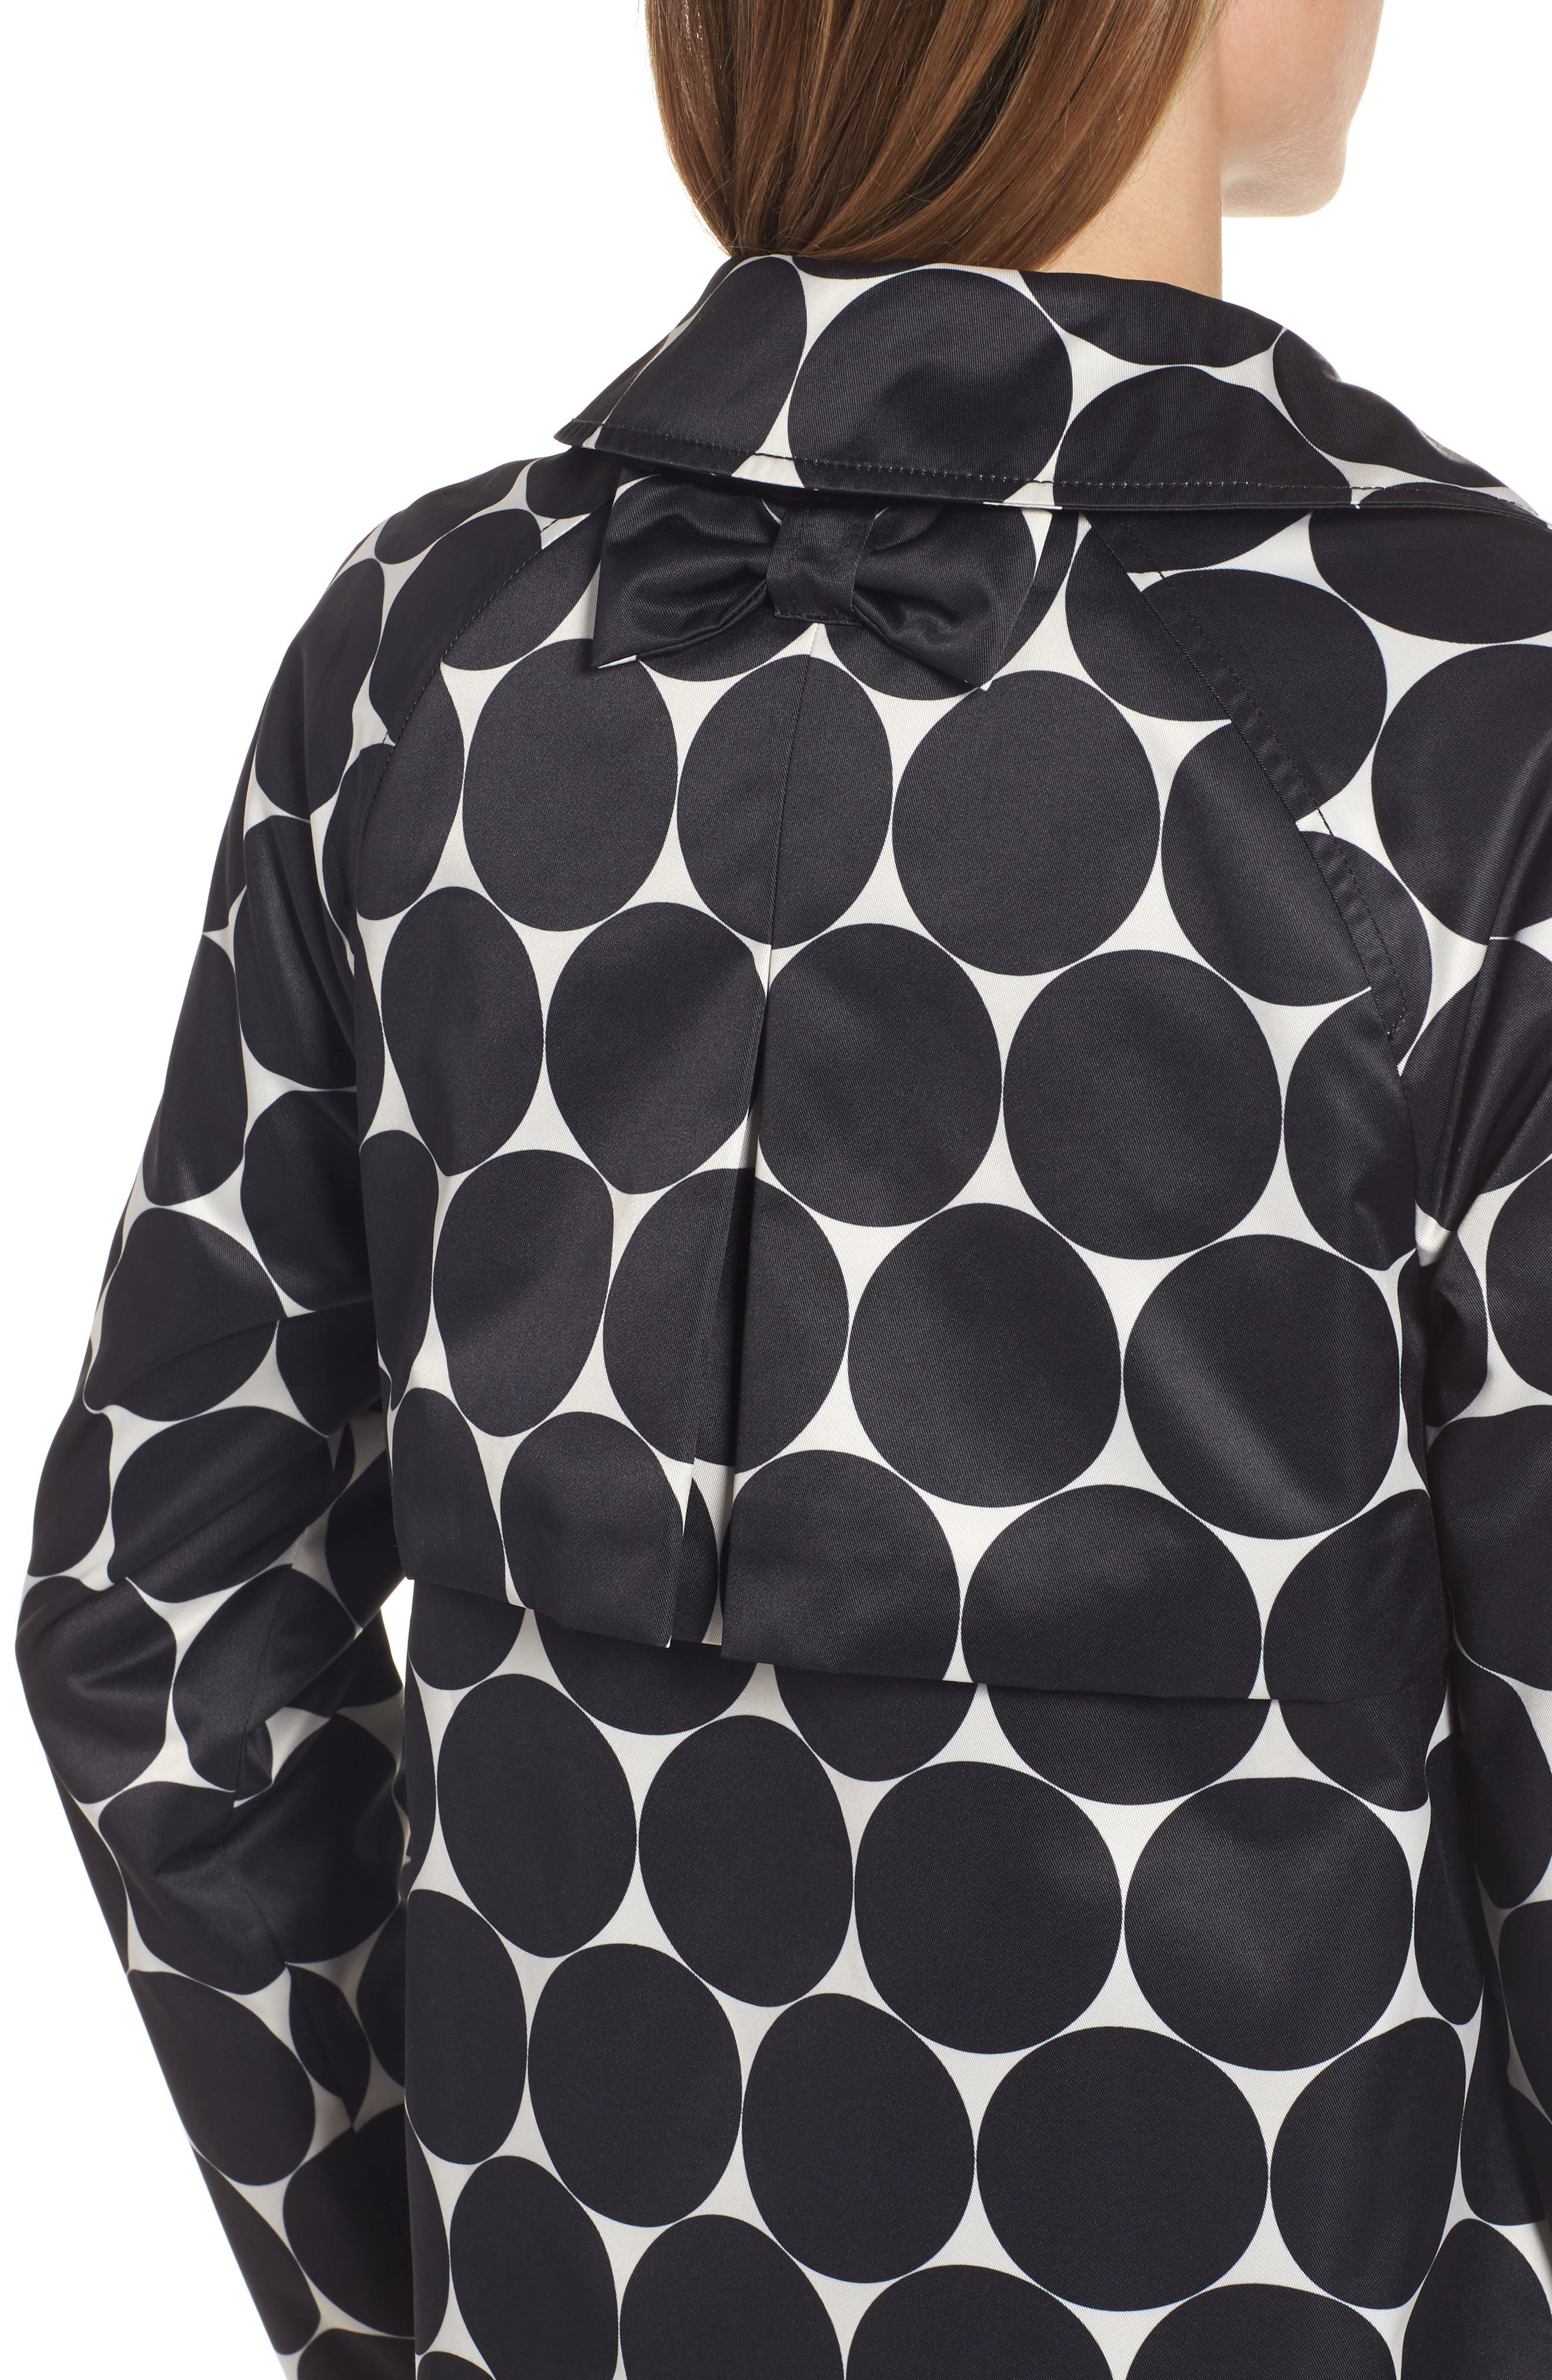 dot print raincoat,                             Alternate thumbnail 4, color,                             009